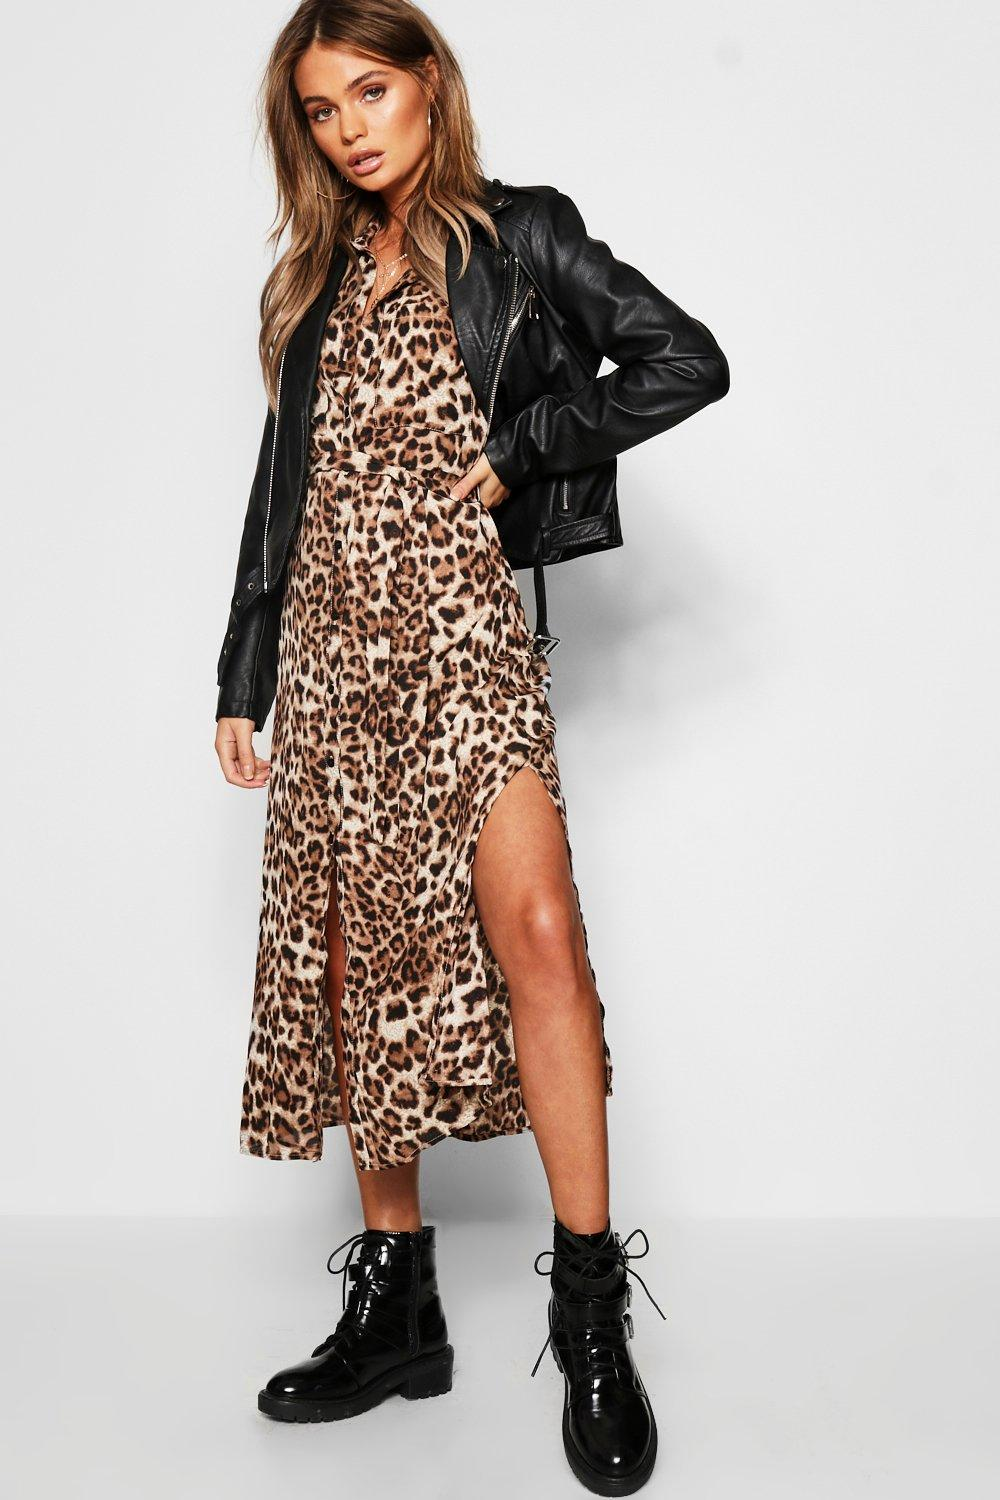 Image result for Leopard Print outfit with leather